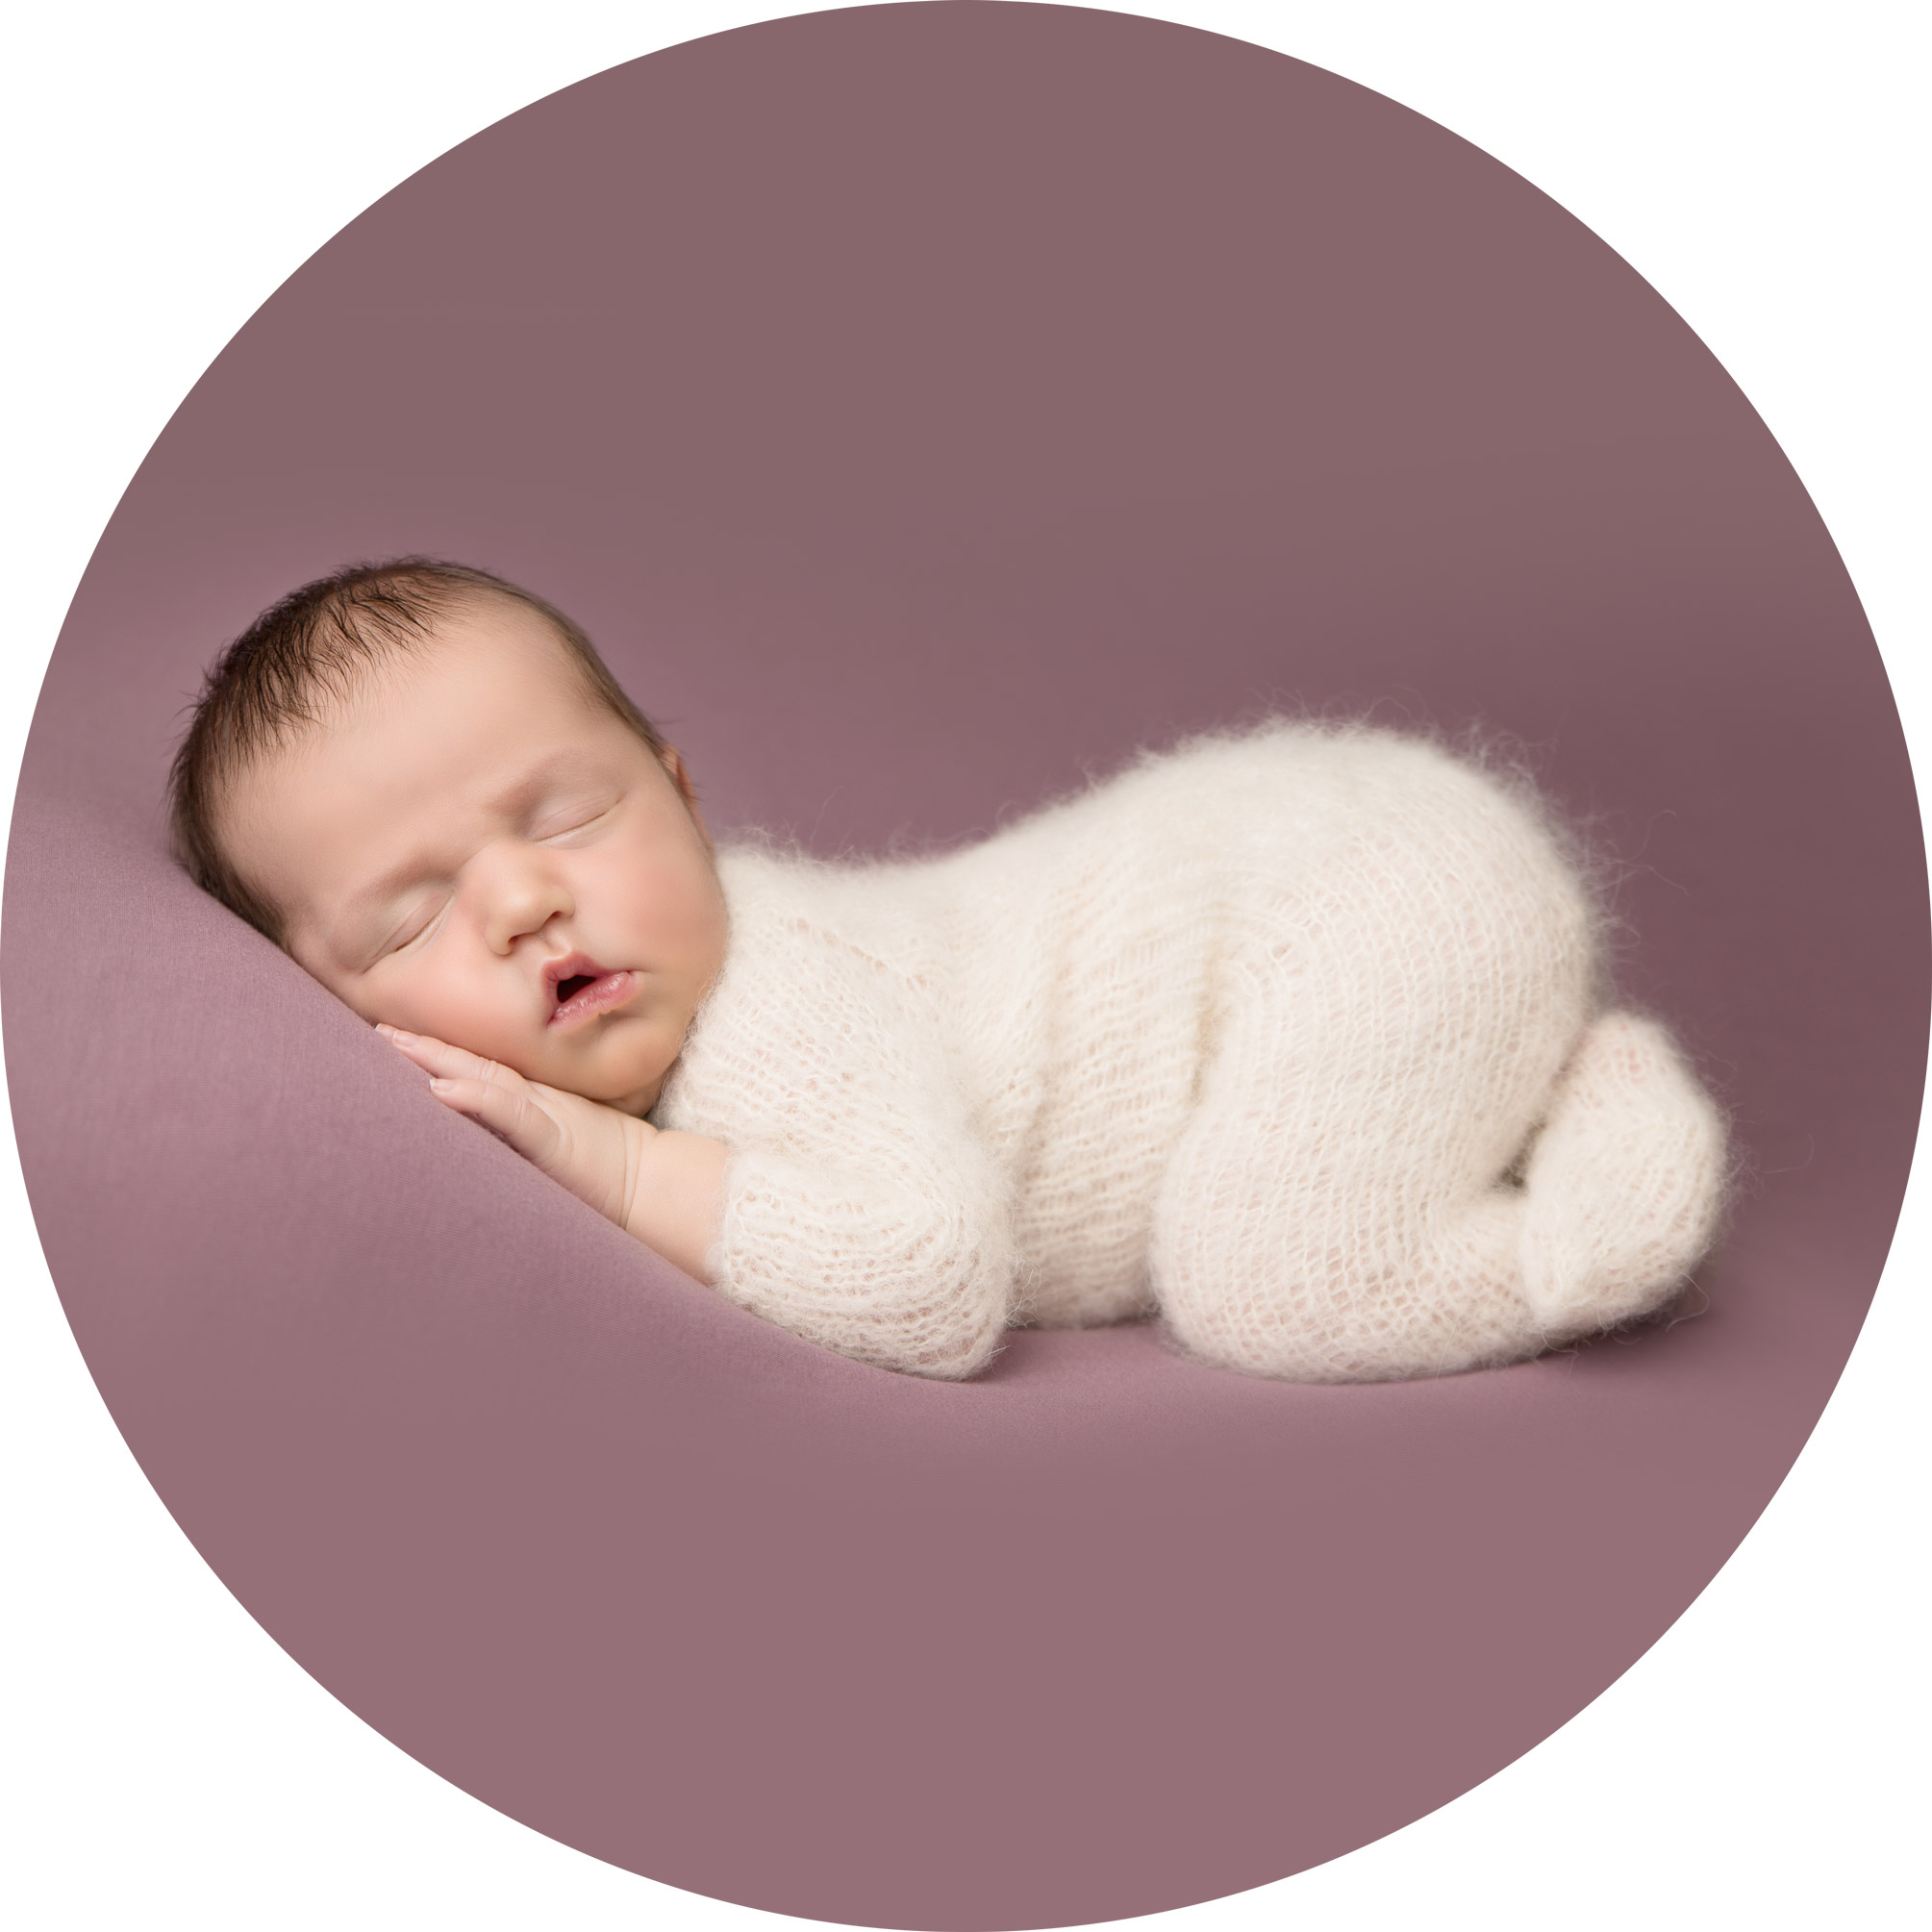 newborn baby girl laying on a mauve blanket asleep on her tummy wearing a white fluffy onesie.